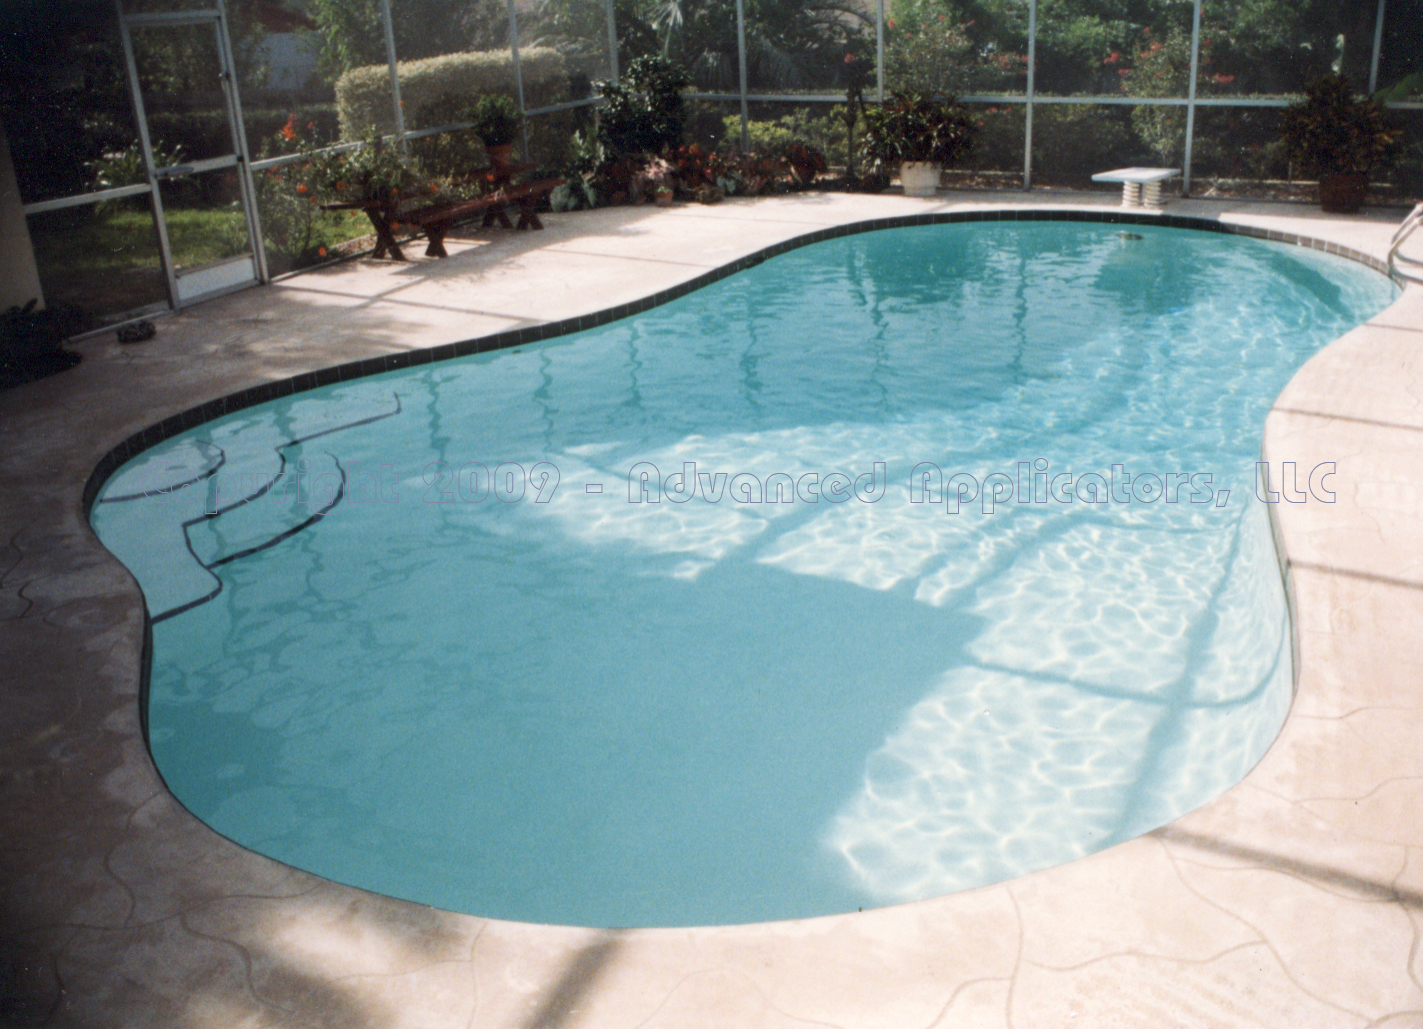 advanced applicators llc swimming pools